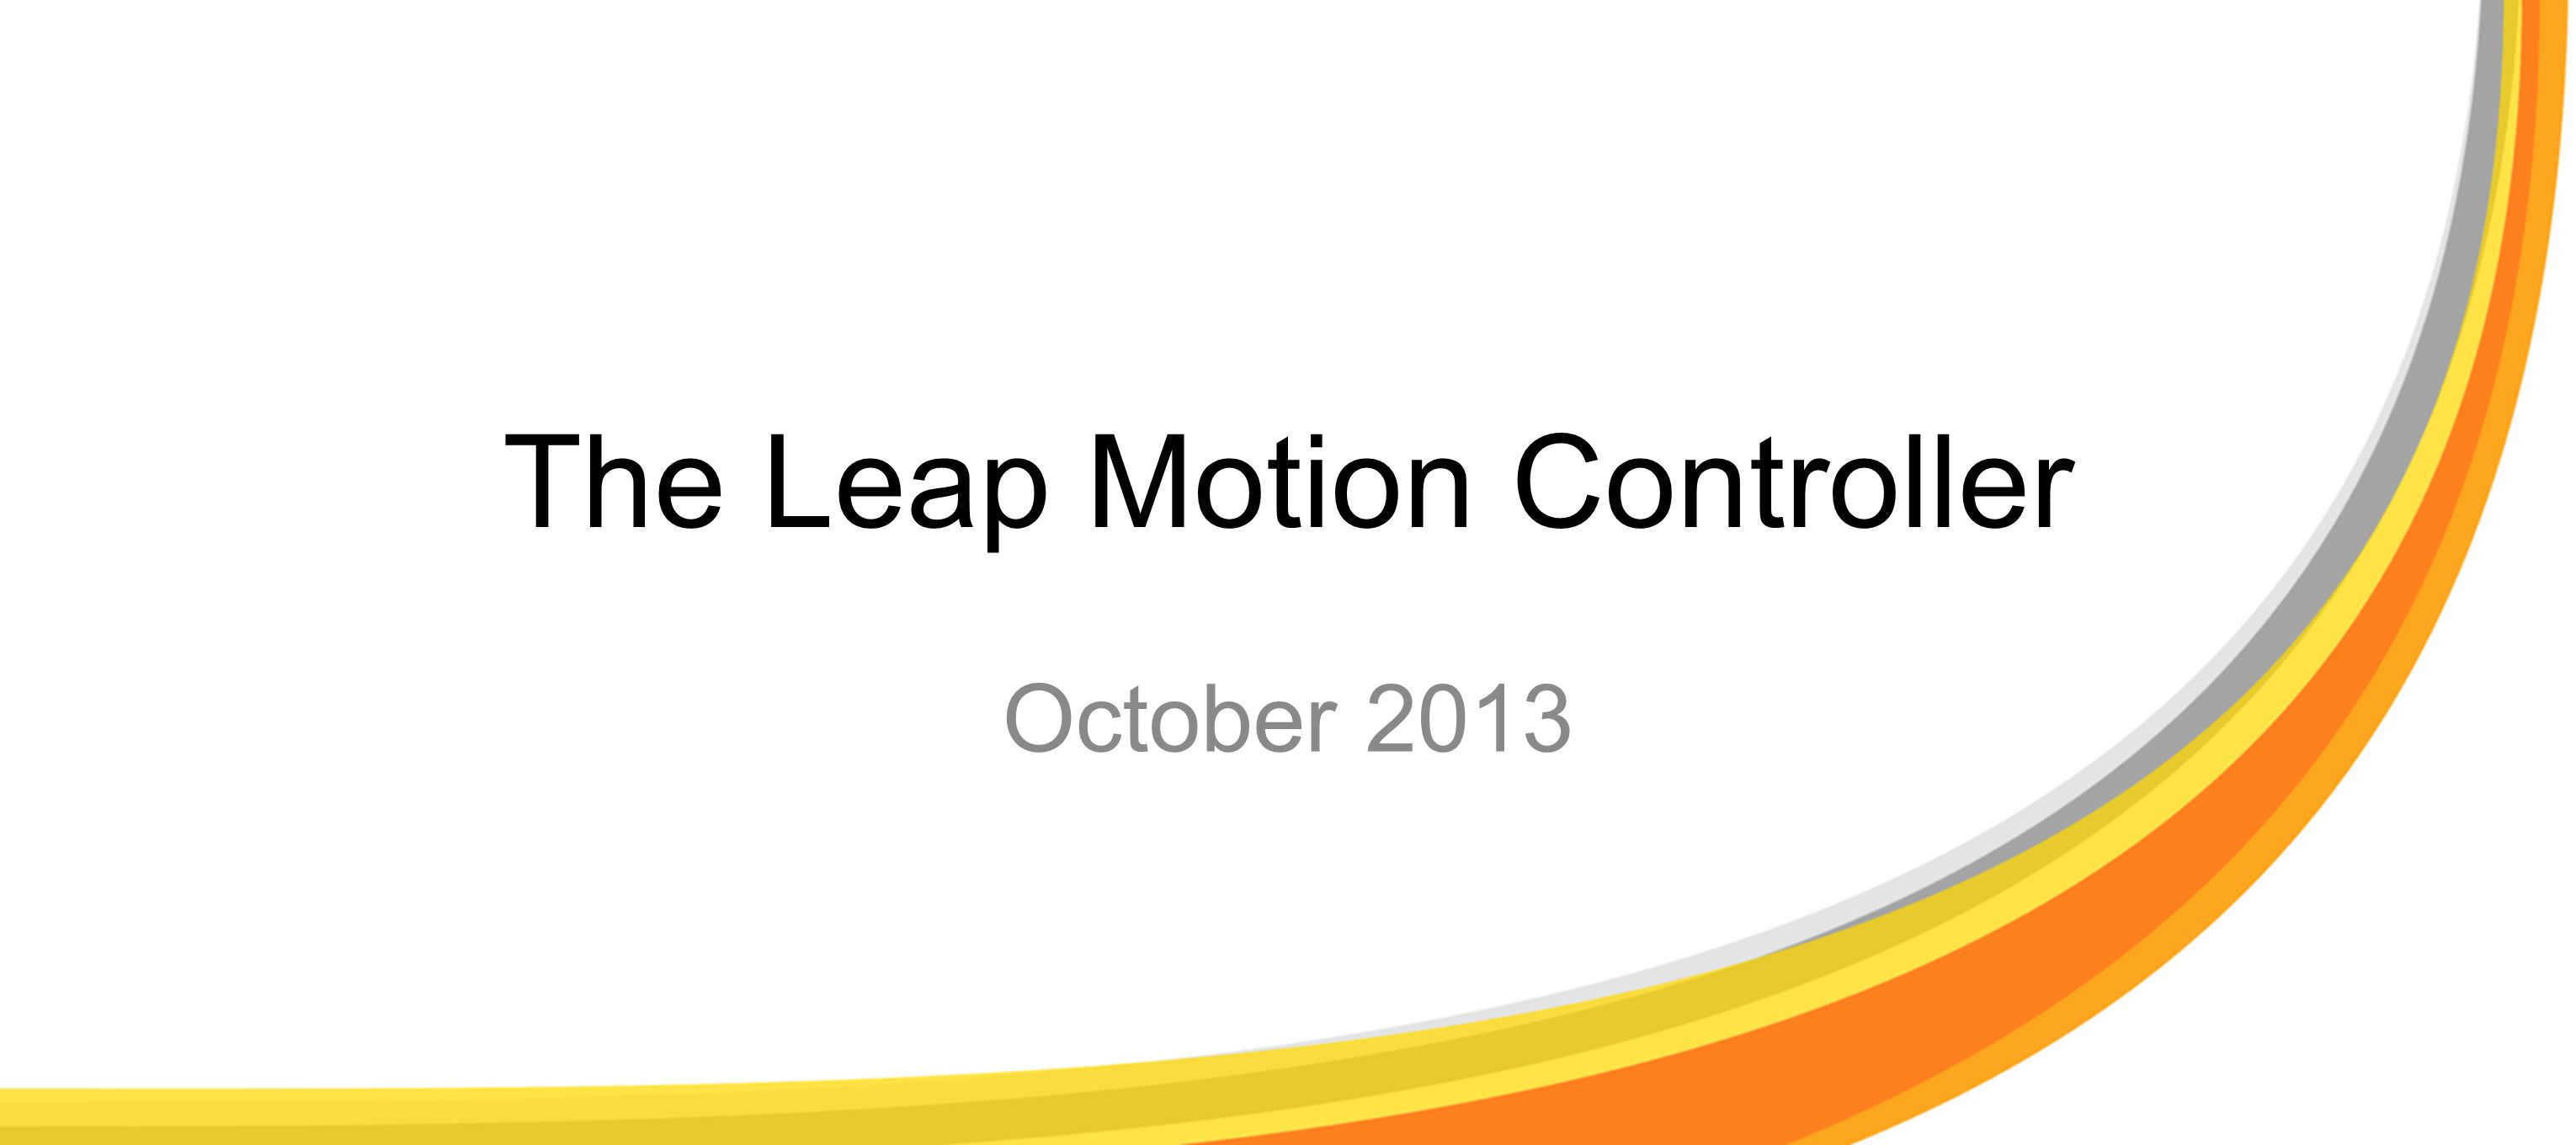 Introduction -Introducing the Leap MotionIntroducing the Leap Motion -$79.99 + shipping and handling (~$20) -Tracks all 10 fingers up to 1/100th of a millimeter -Has a super-wide 150° field of view and a Z-axis for depth -Can track movements at a rate of over 200 frames per second